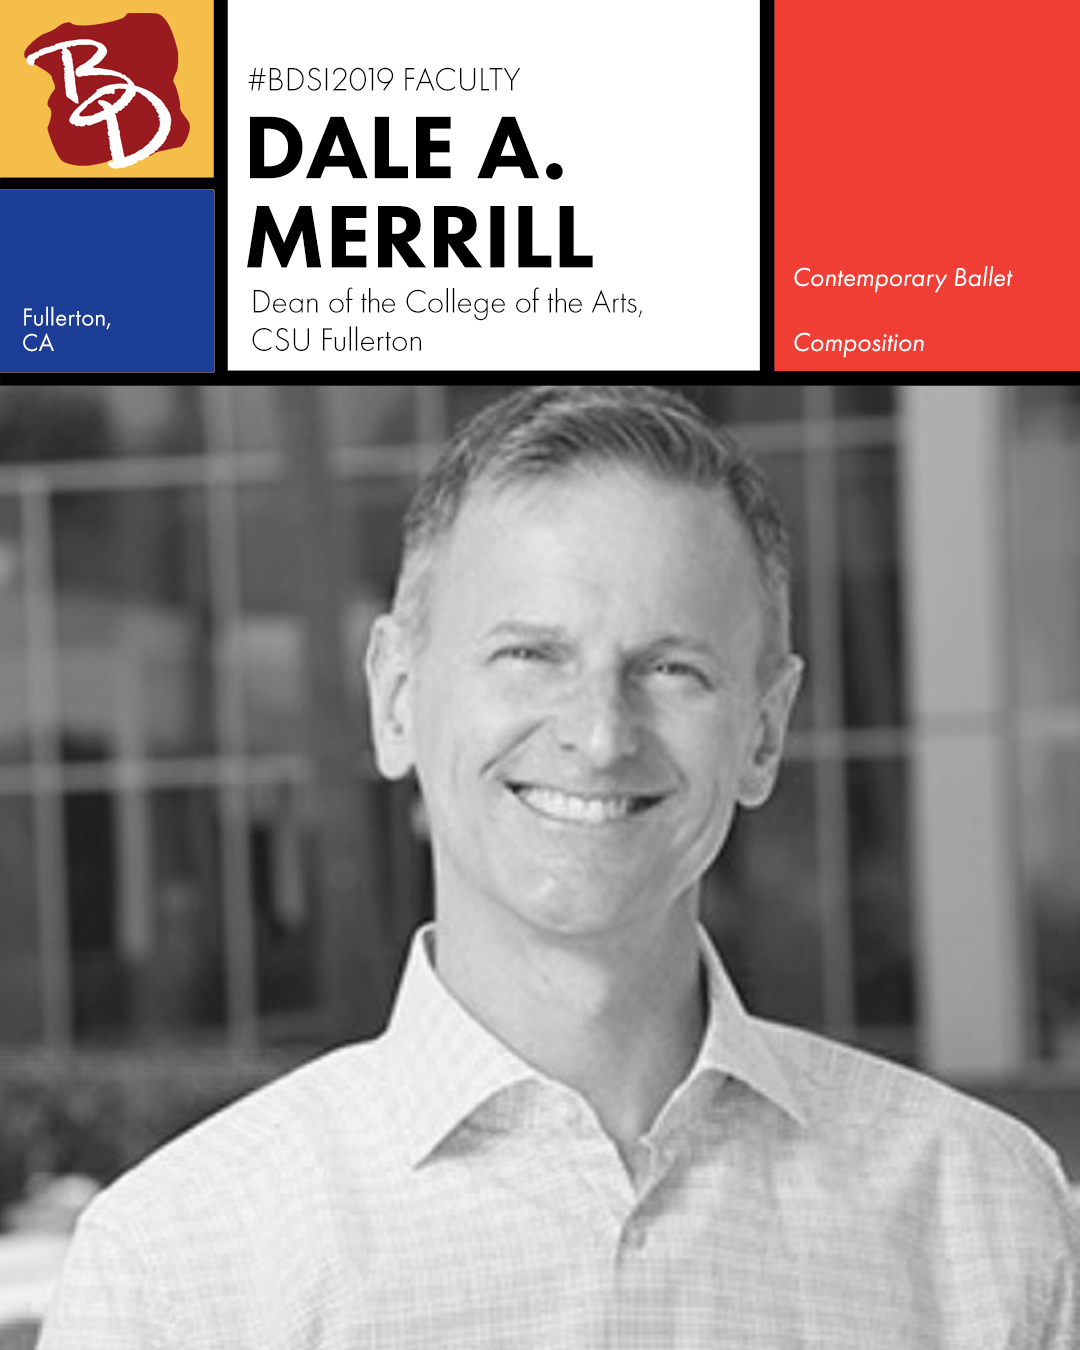 Faculty Announcement - Merrill Dale A.jpg